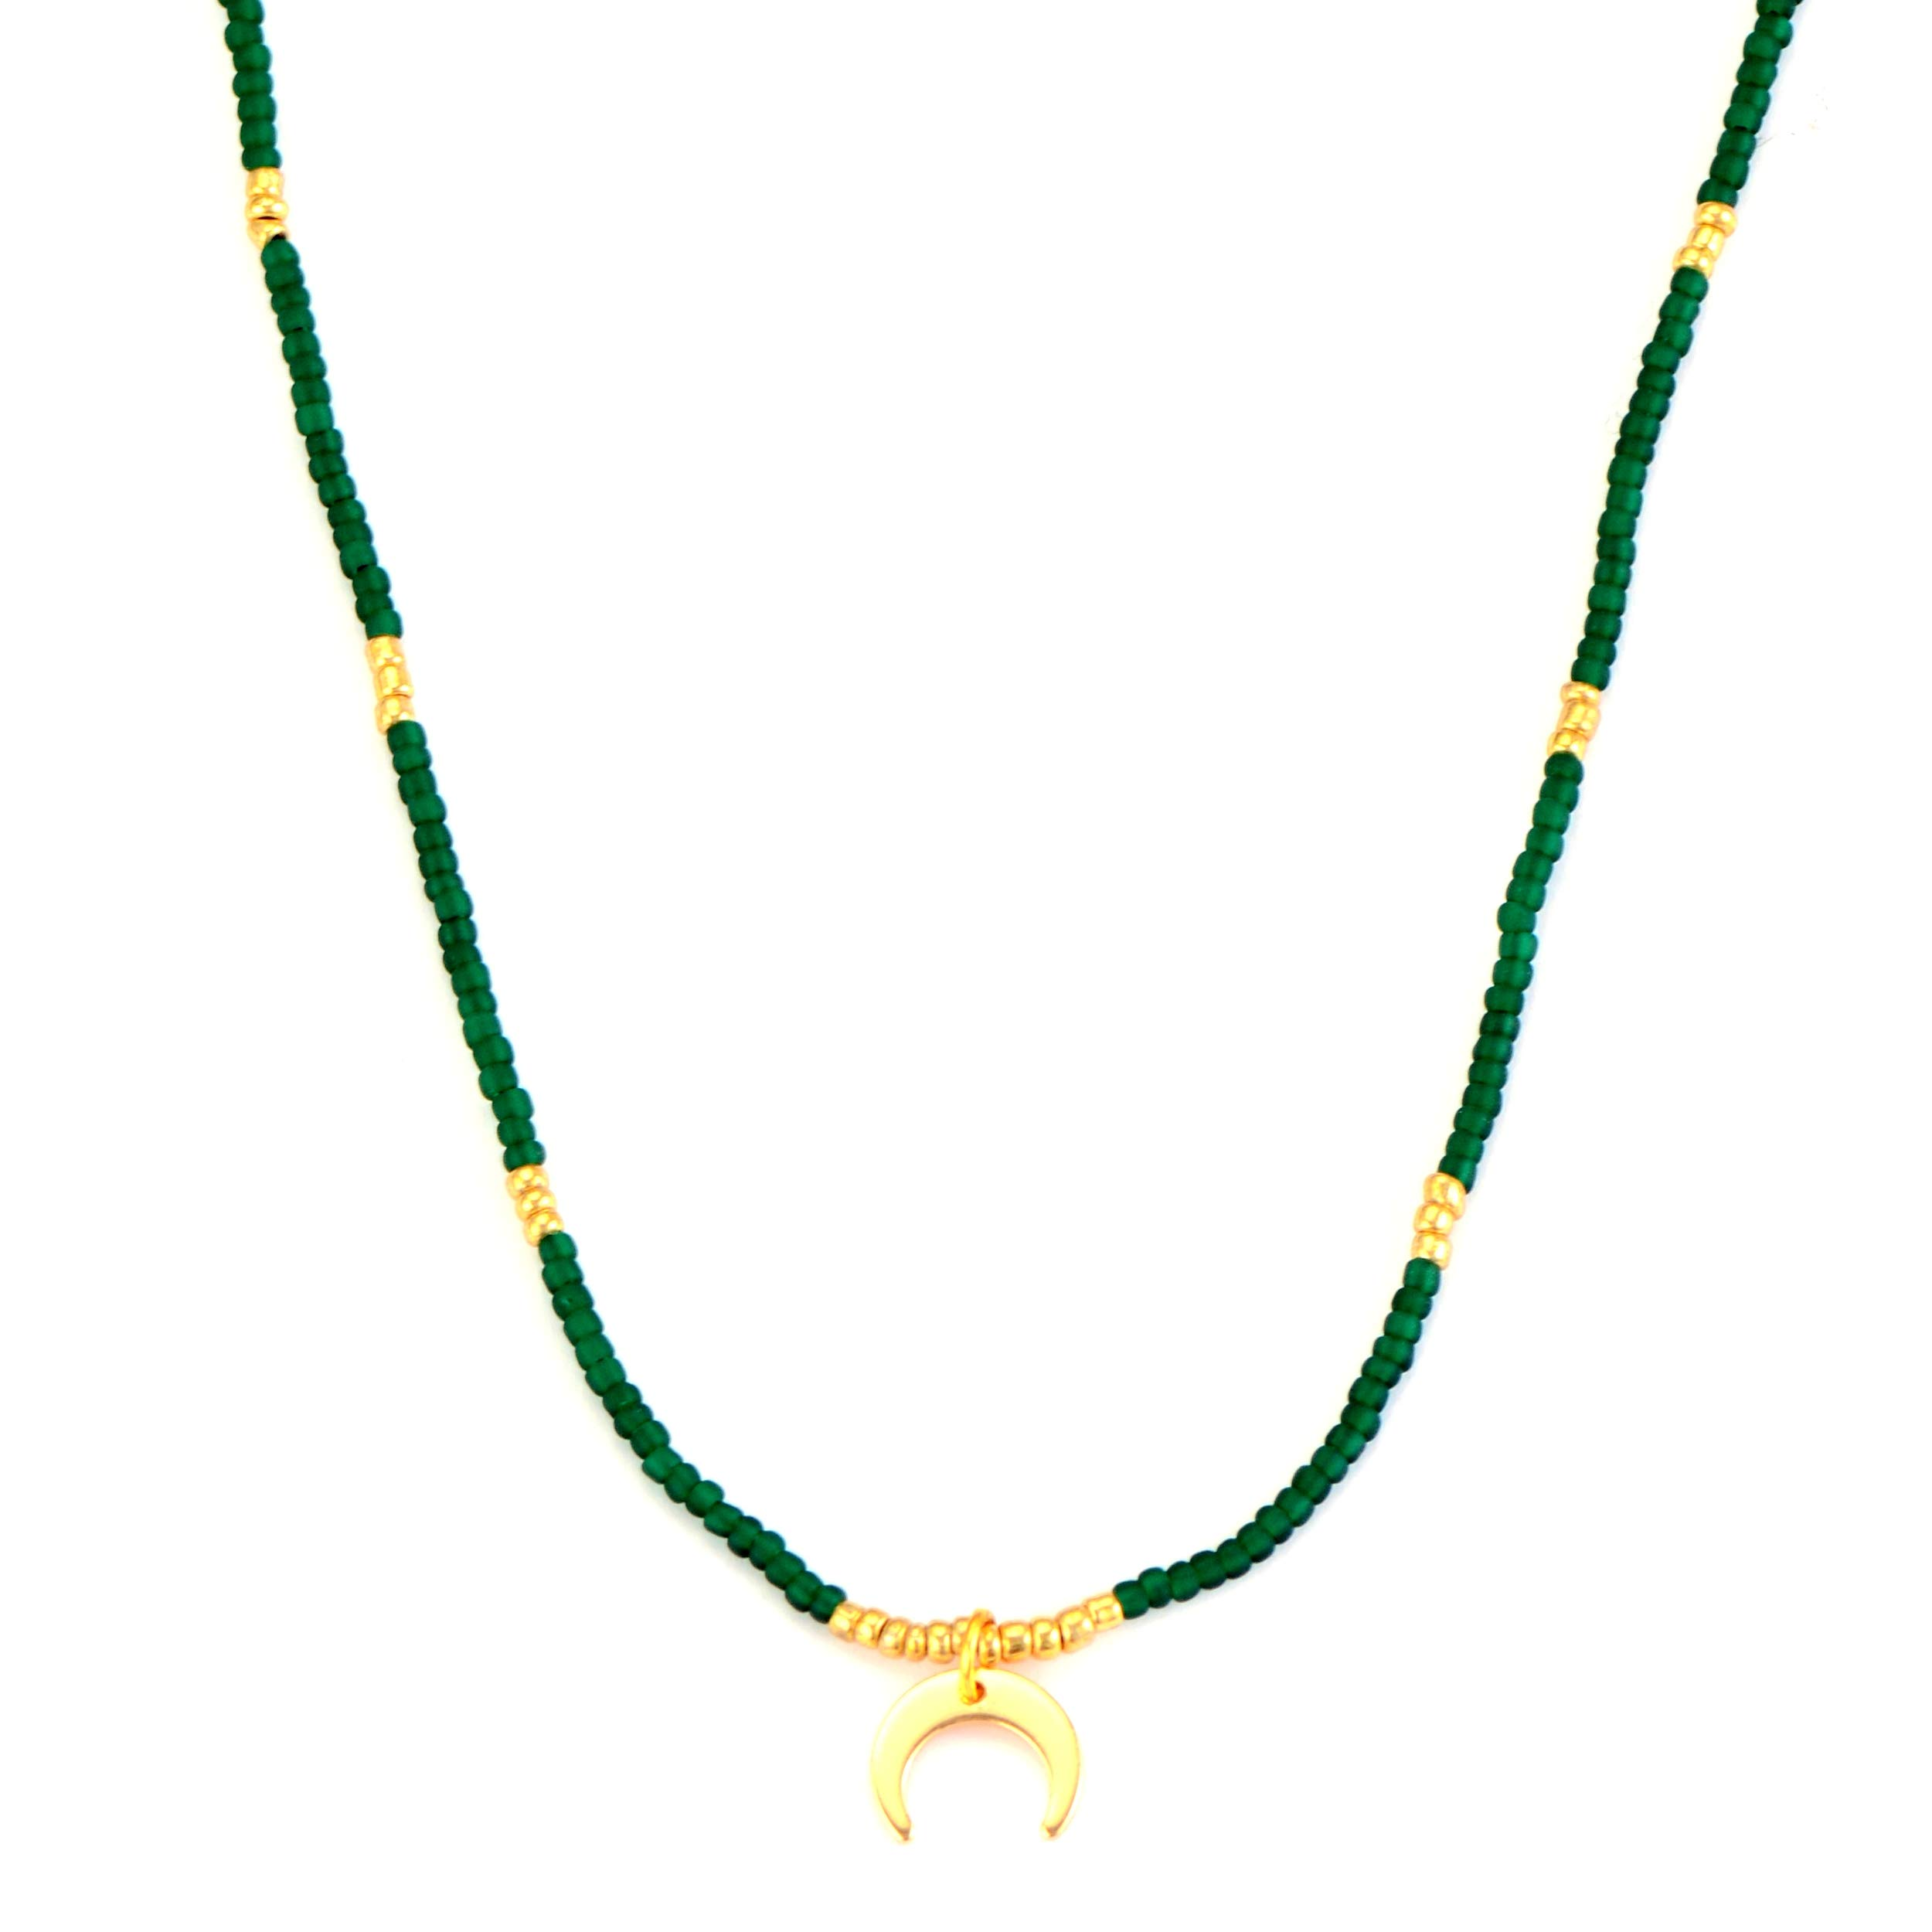 SUKIBOHO Art Gold Charms Seed Beads Choker Necklaces for Women